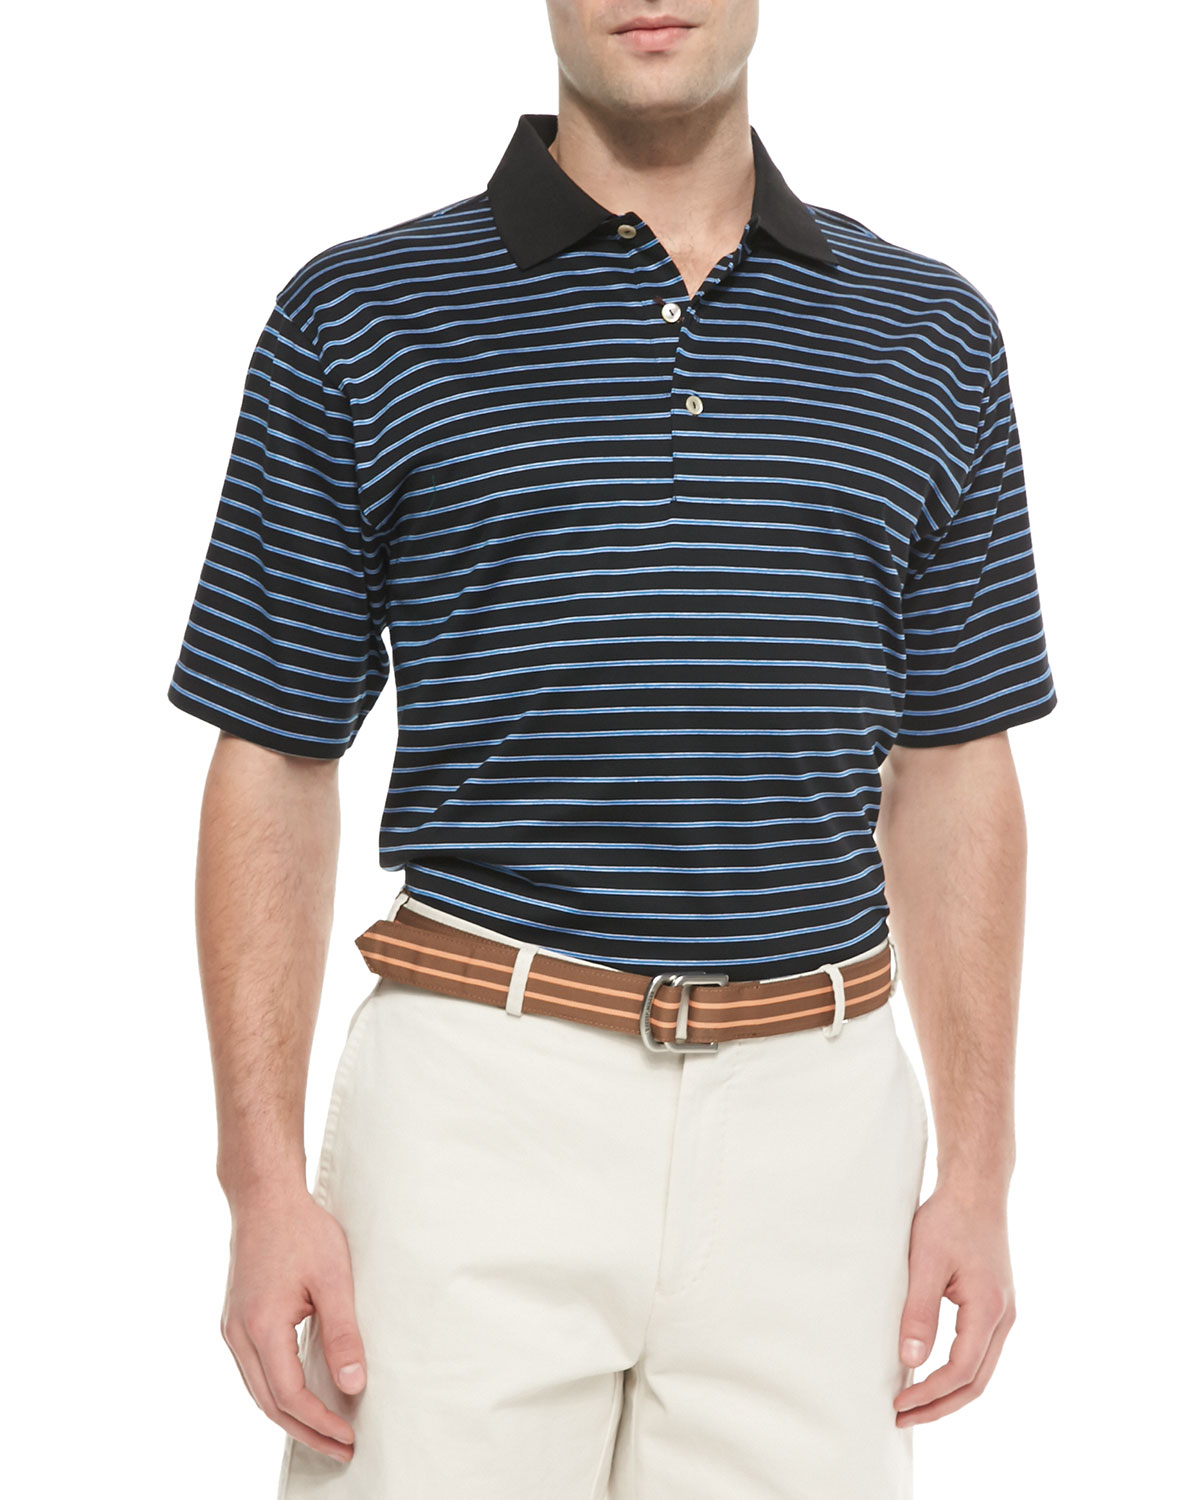 Peter millar thin striped cotton polo shirt in multicolor for Peter millar women s golf shirts